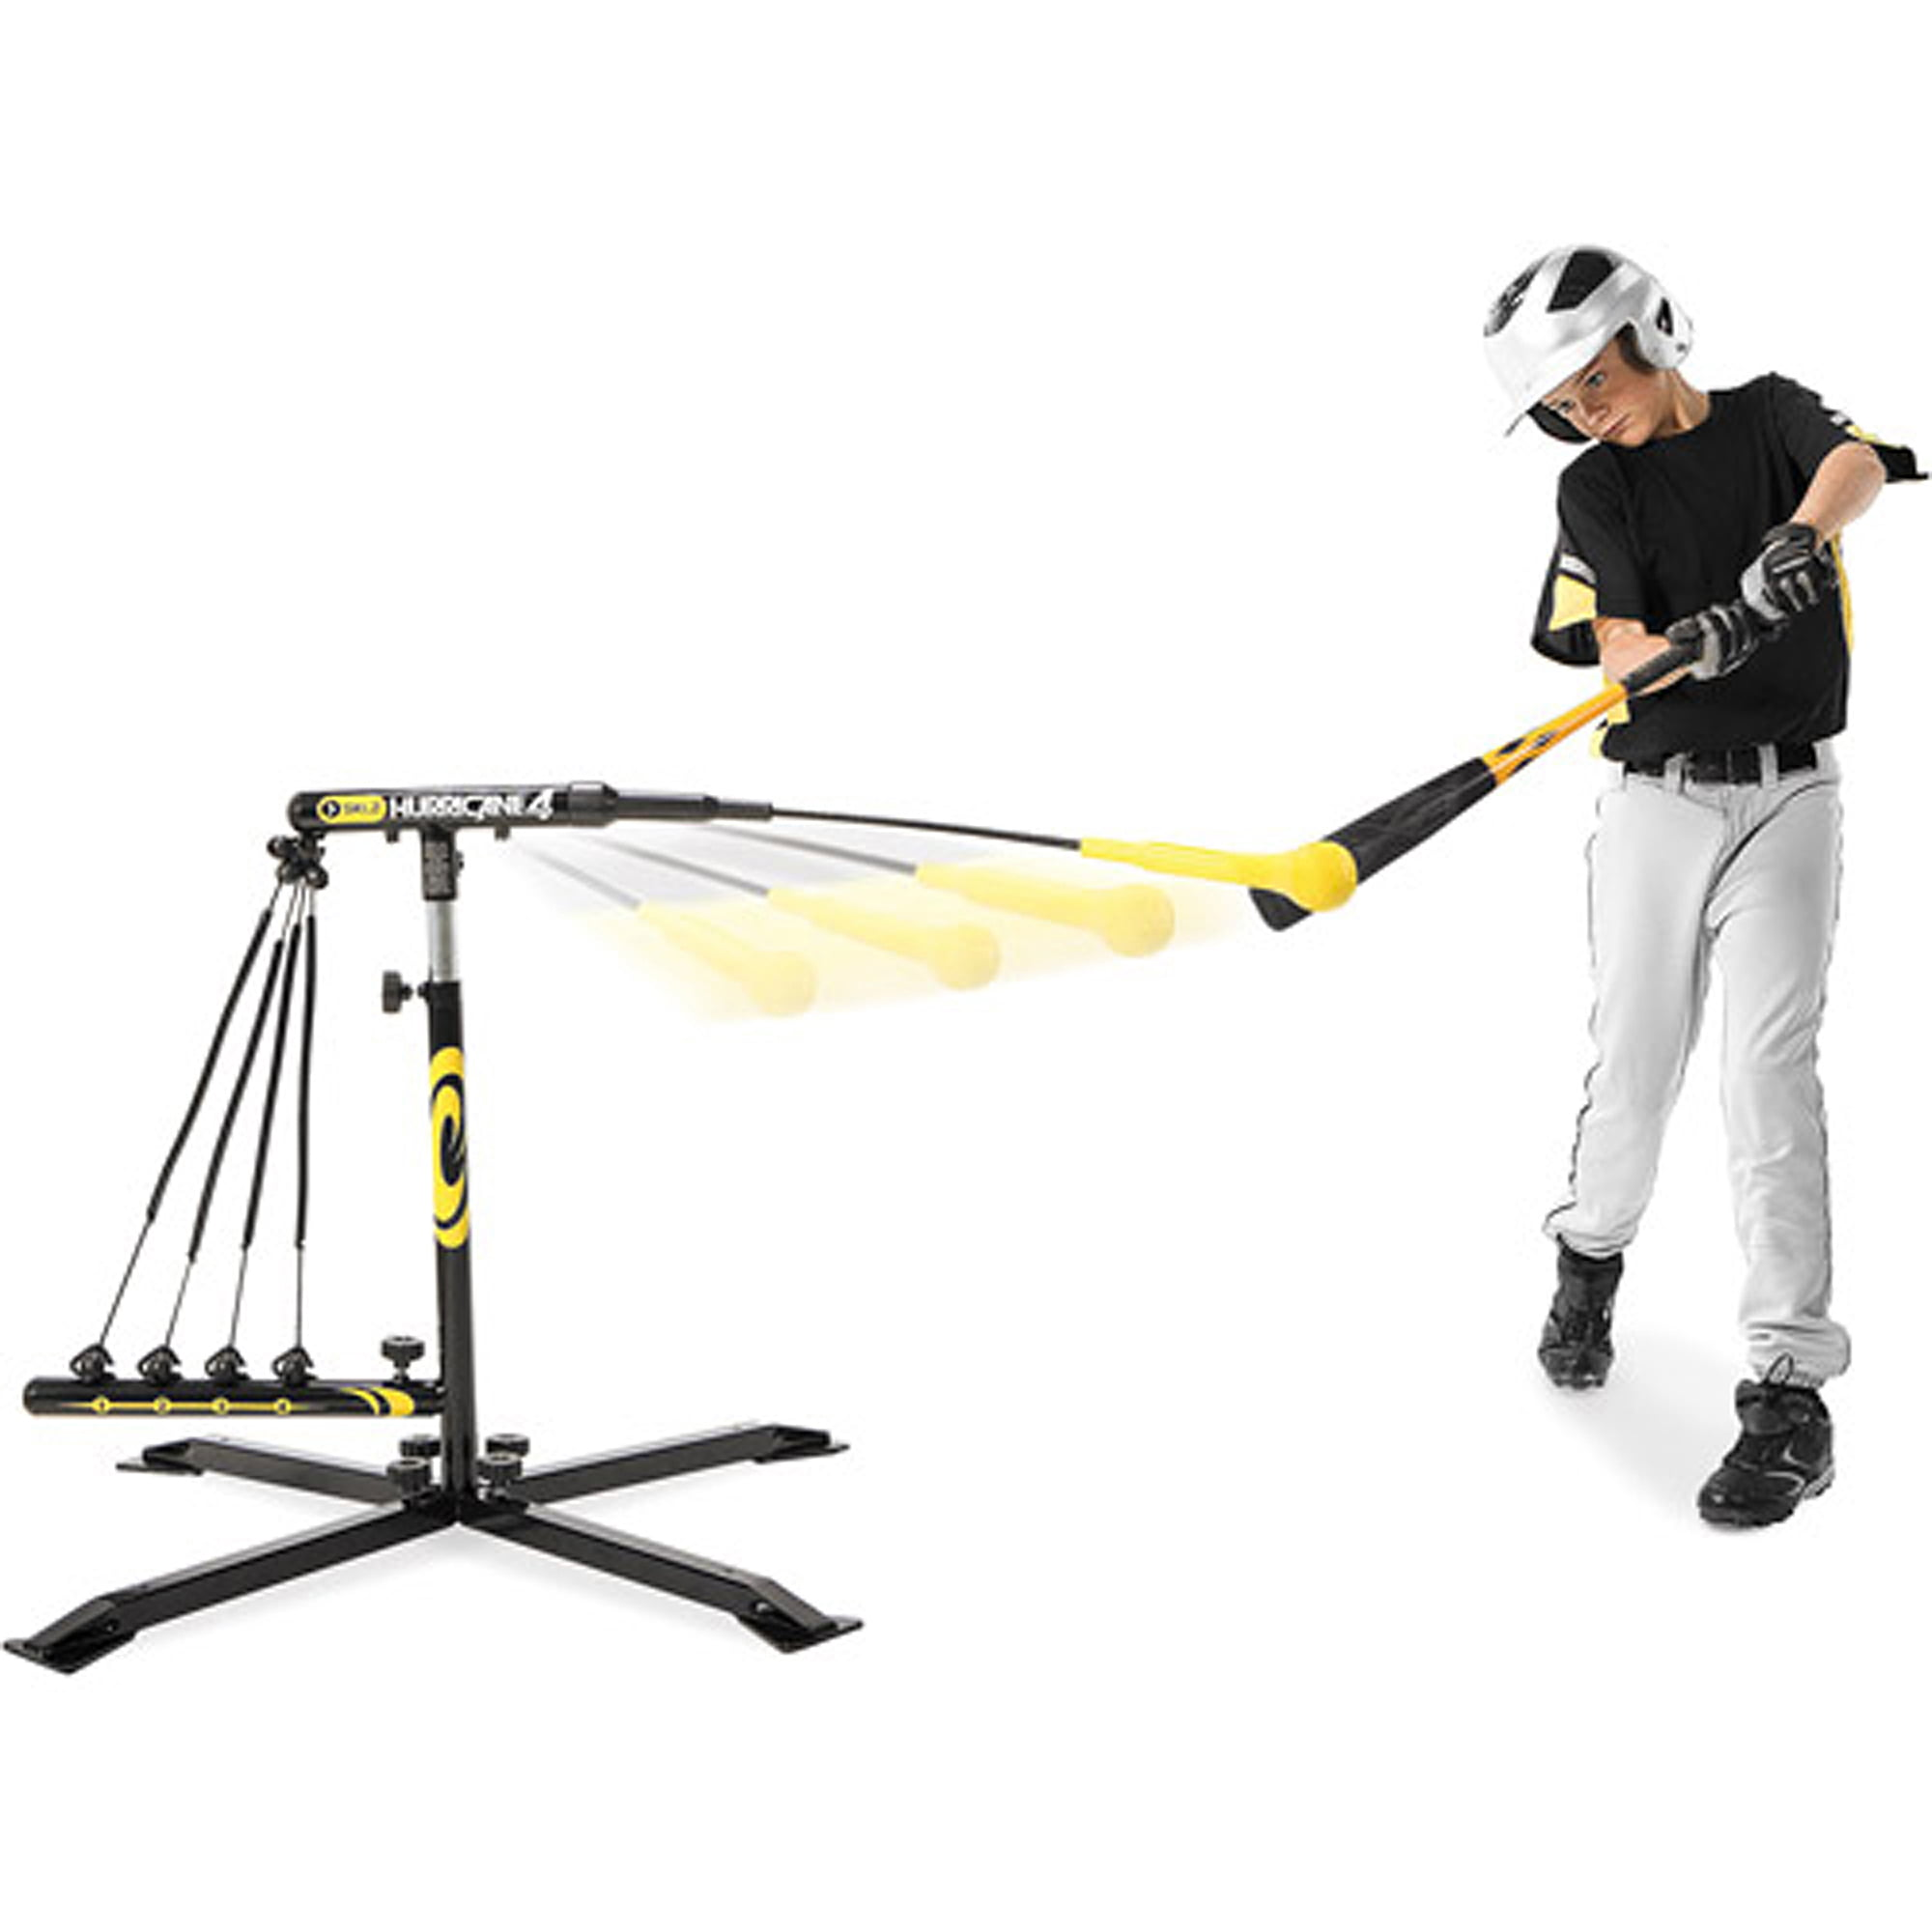 SKLZ Hurricane Category 4 Solo Baseball Swing Trainer by SKLZ